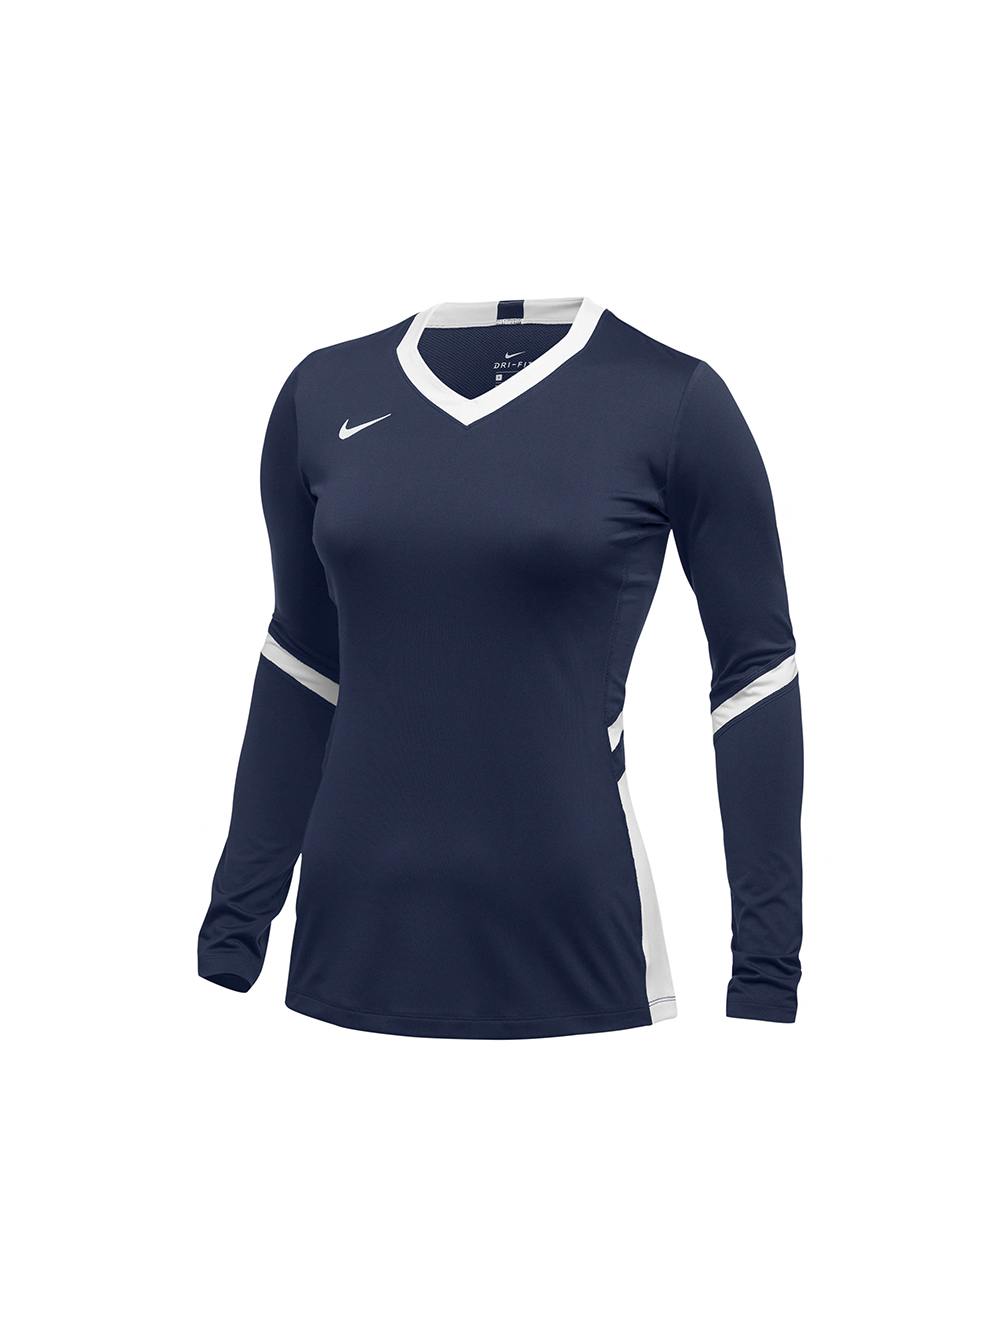 Paternal Recurso fantasma  Nike Youth LS Hyperace Jersey - Navy/White   Midwest Volleyball Warehouse